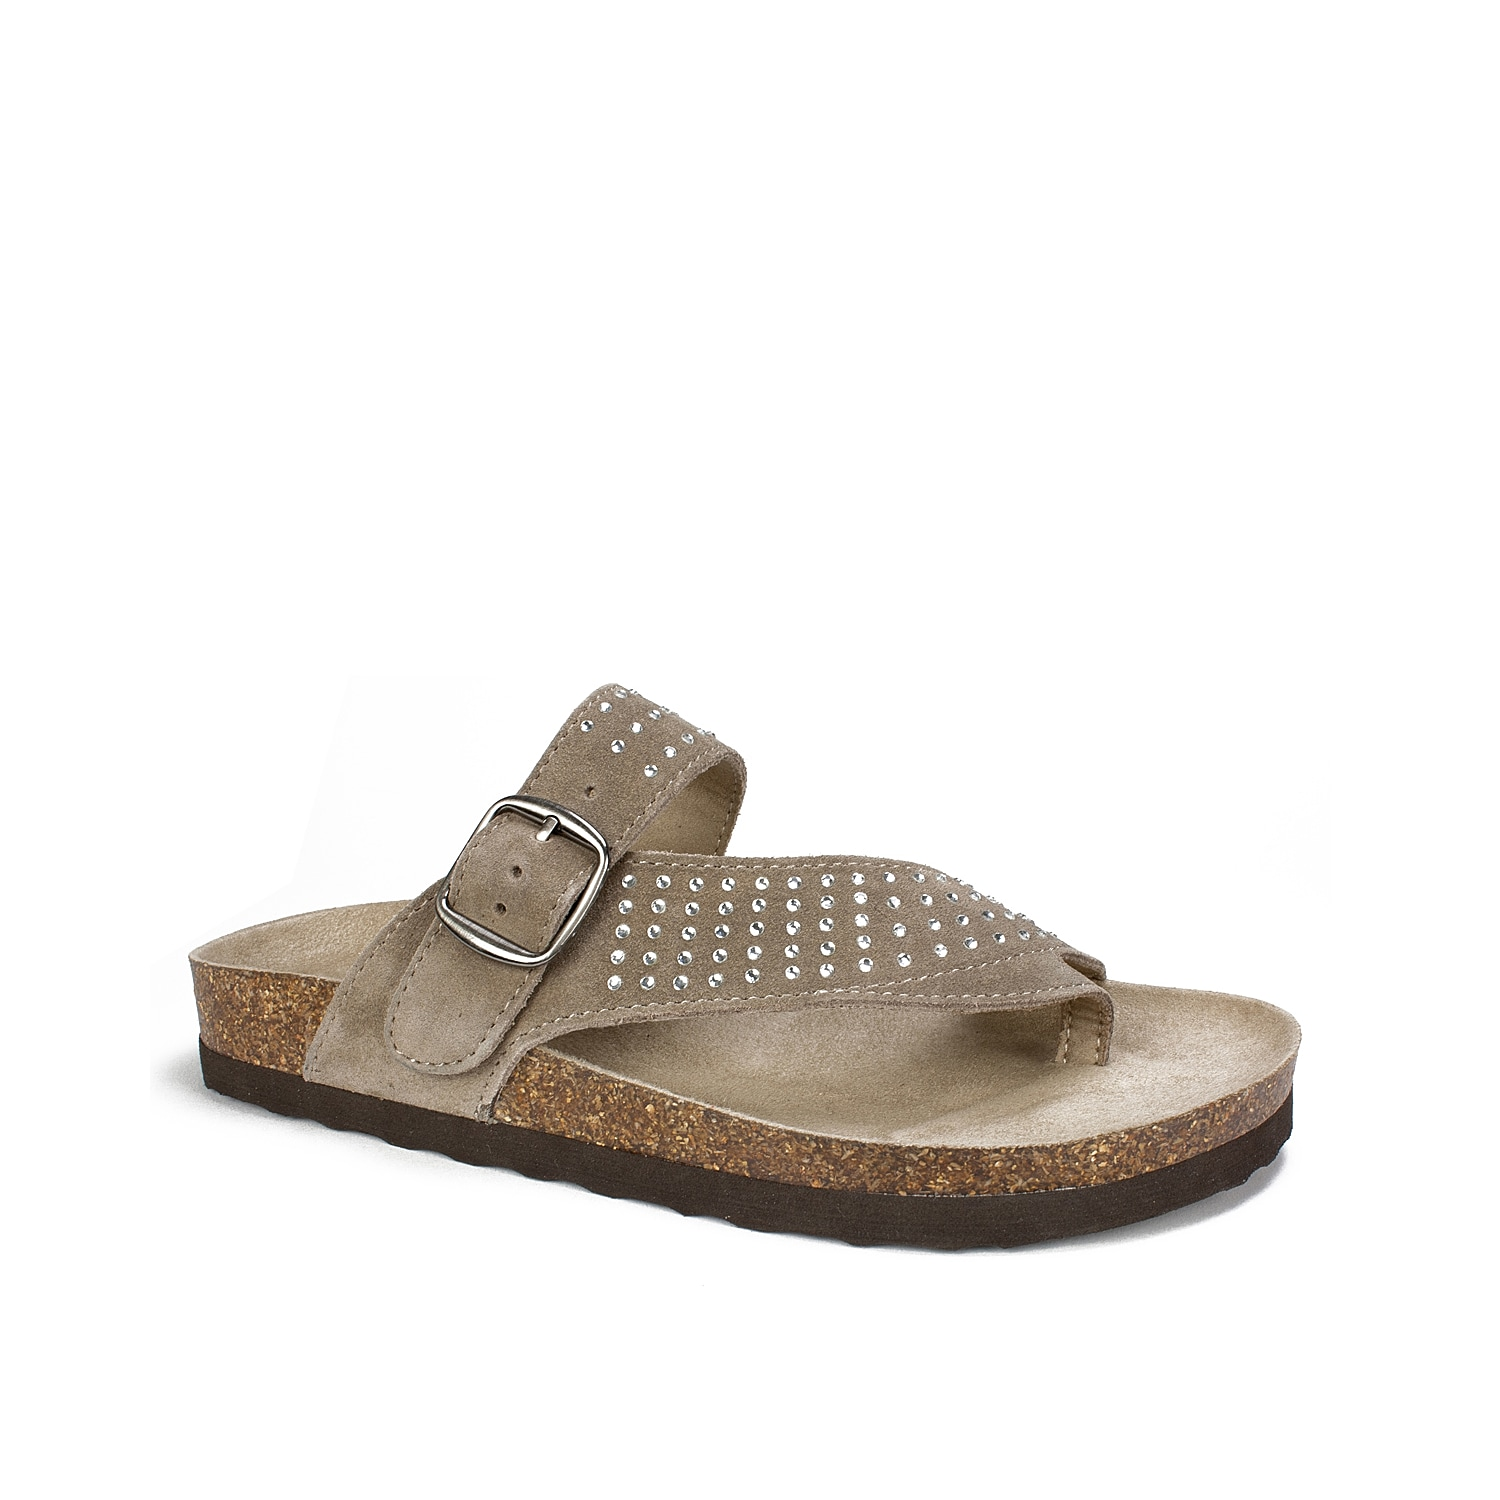 Slip on these comfortable slides to complete your warm weather look. With rhinestone embellishments and a soft suede construction, the White Mountain Coaster is the perfect sandal to update to your casual summer wardrobe!